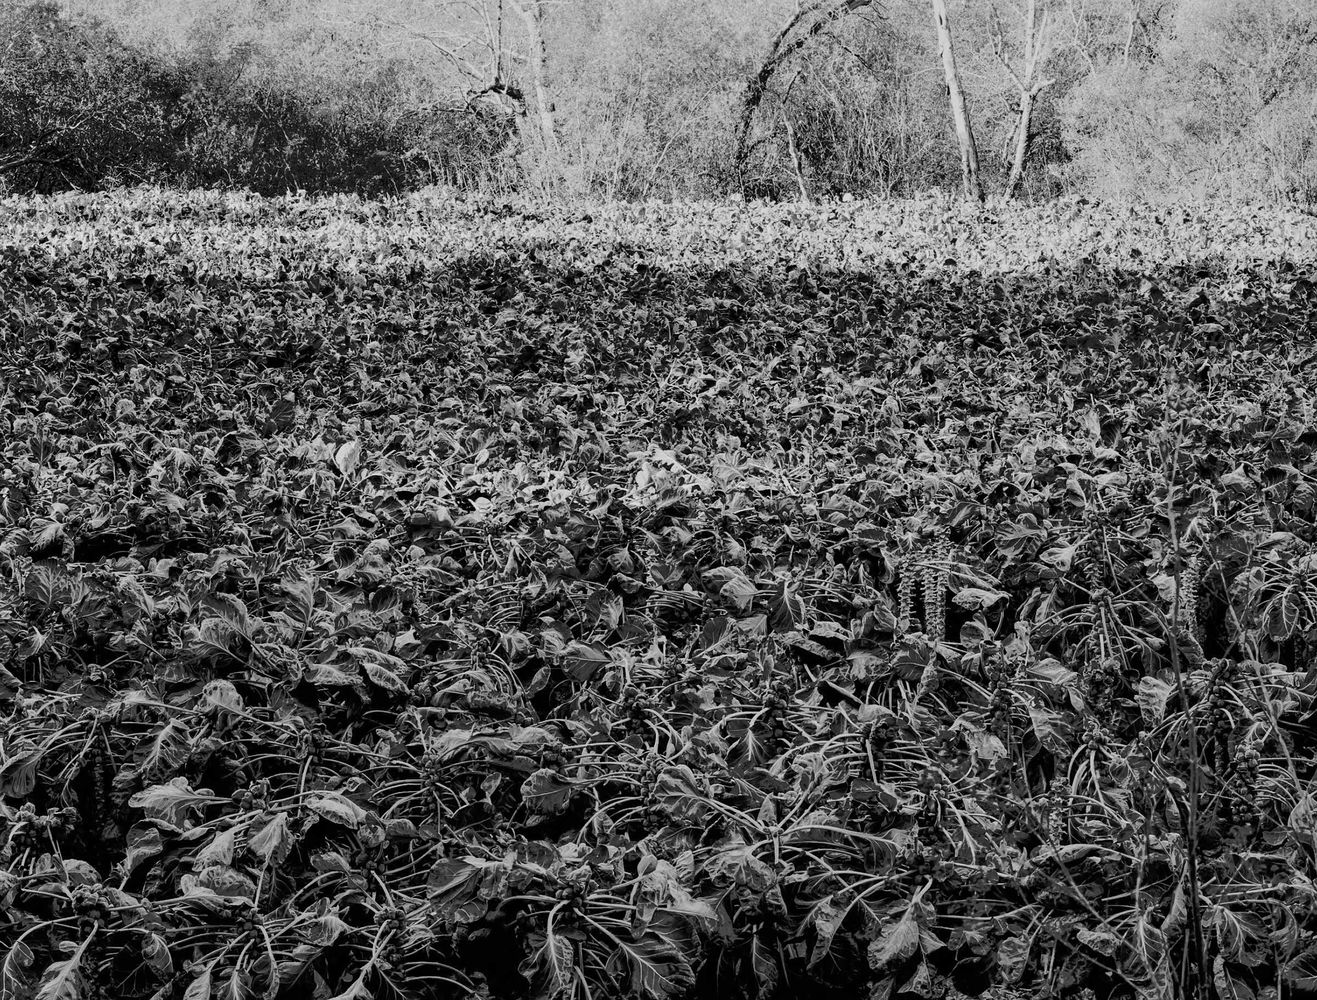 Brussel Sprout Field 1979